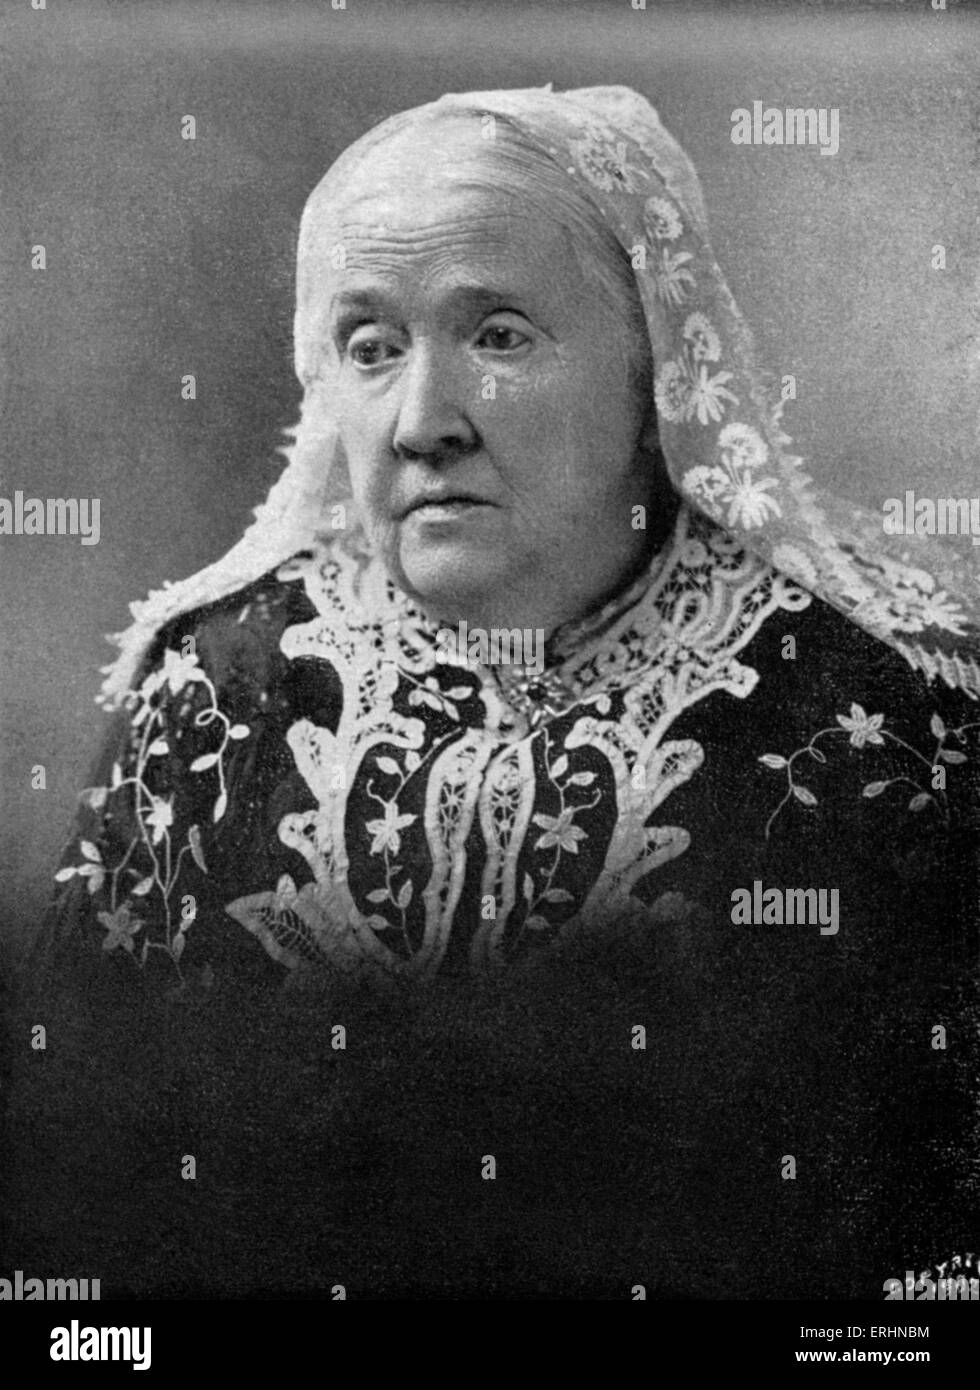 Julia Ward Howe - portrait Poet who wrote 'The Battle Hymn of the Republic', also American abolitionist, - Stock Image